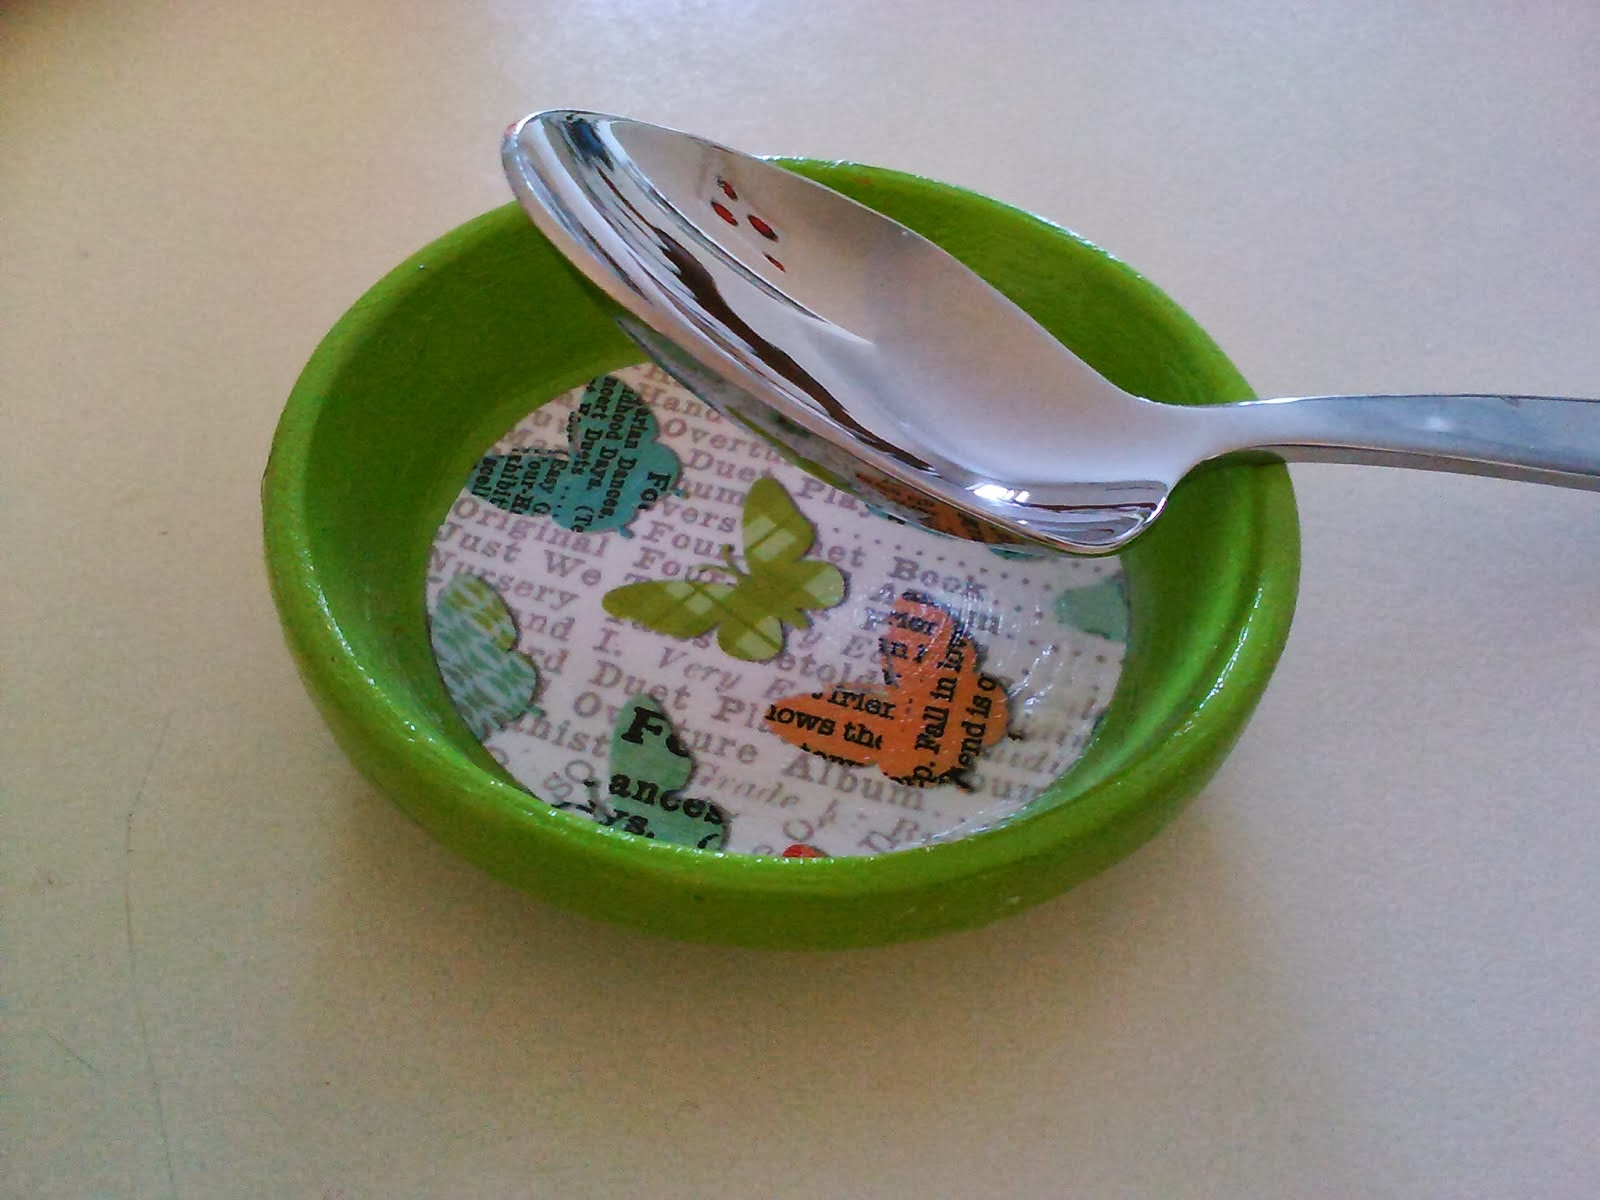 http://carynska.blogspot.com/2014/01/diy-spoon-rest.html